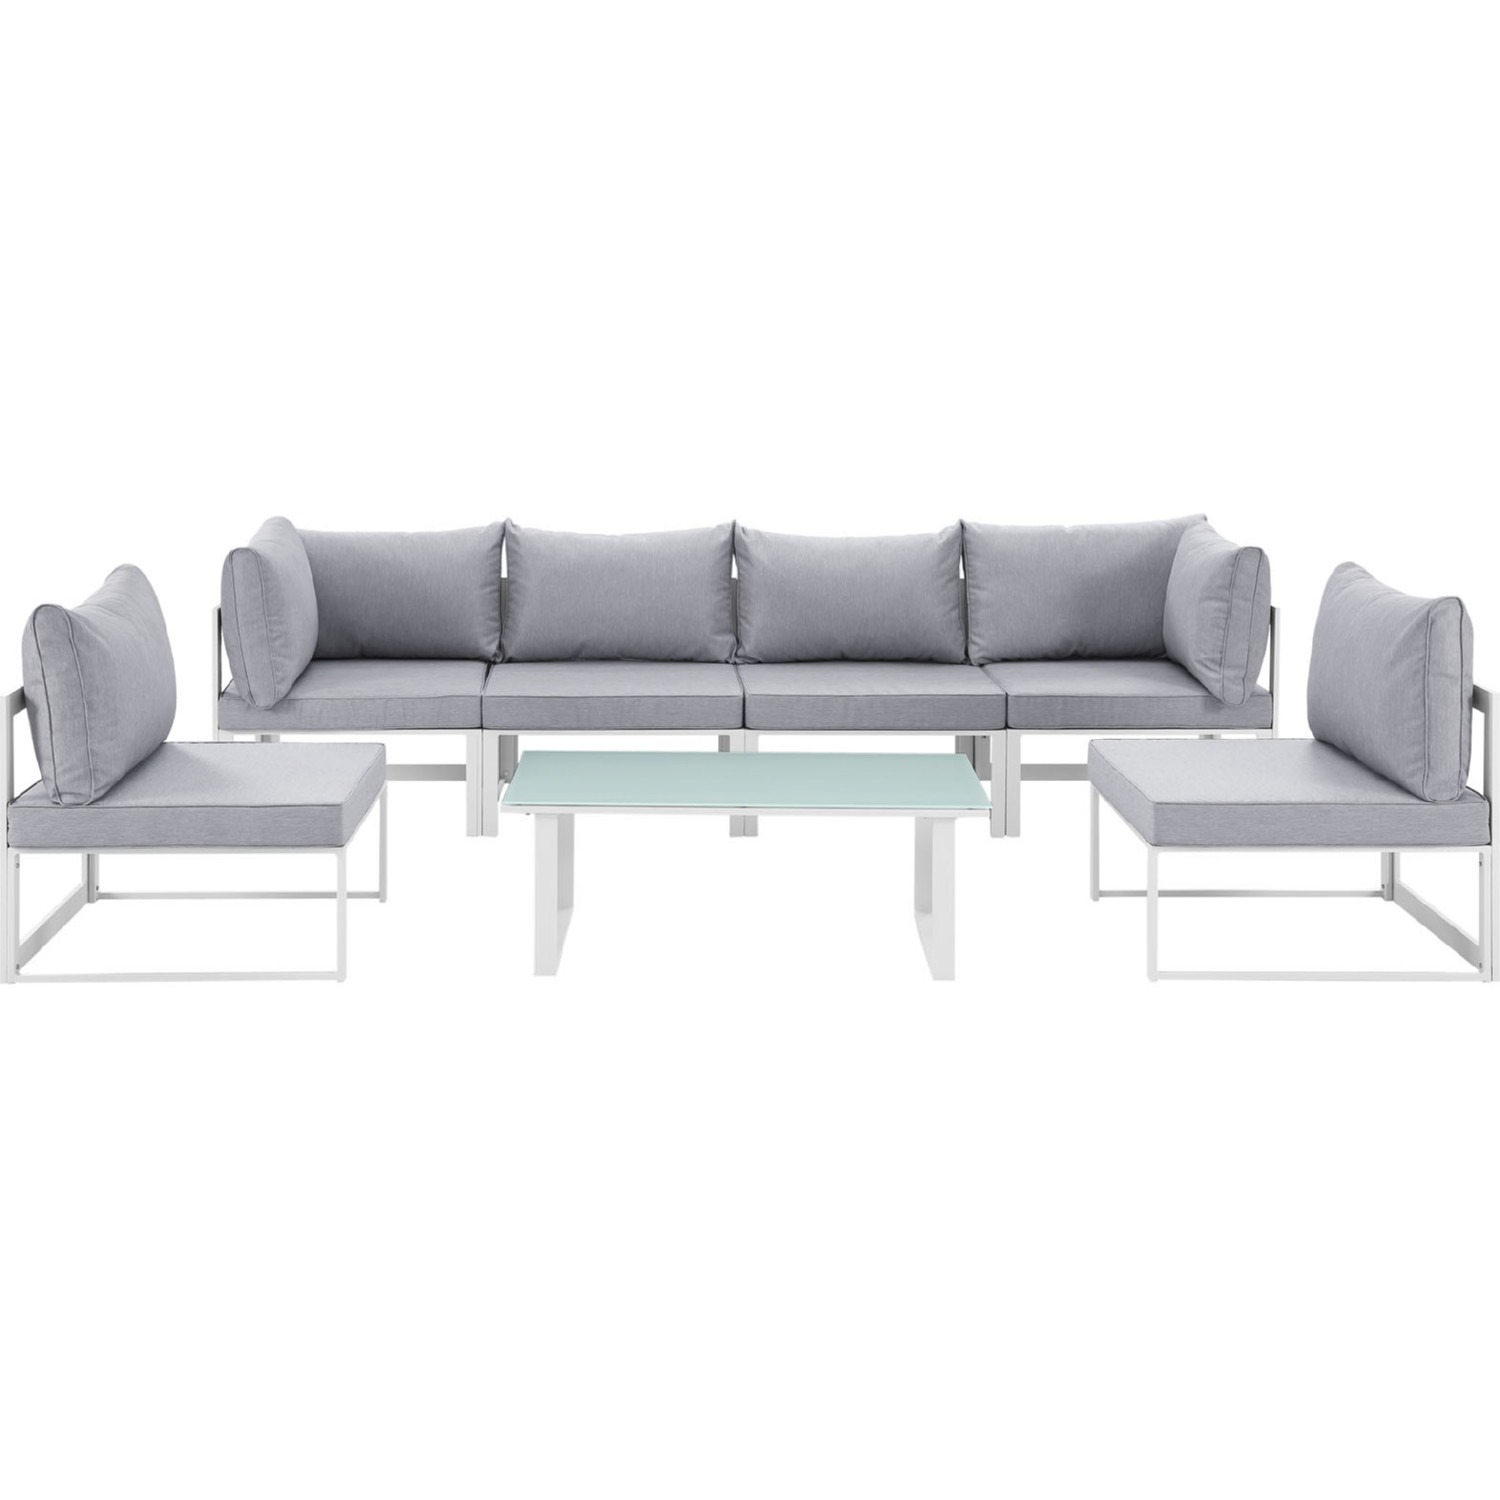 7-Piece Outdoor Sectional In Gray & White Finish - image-0